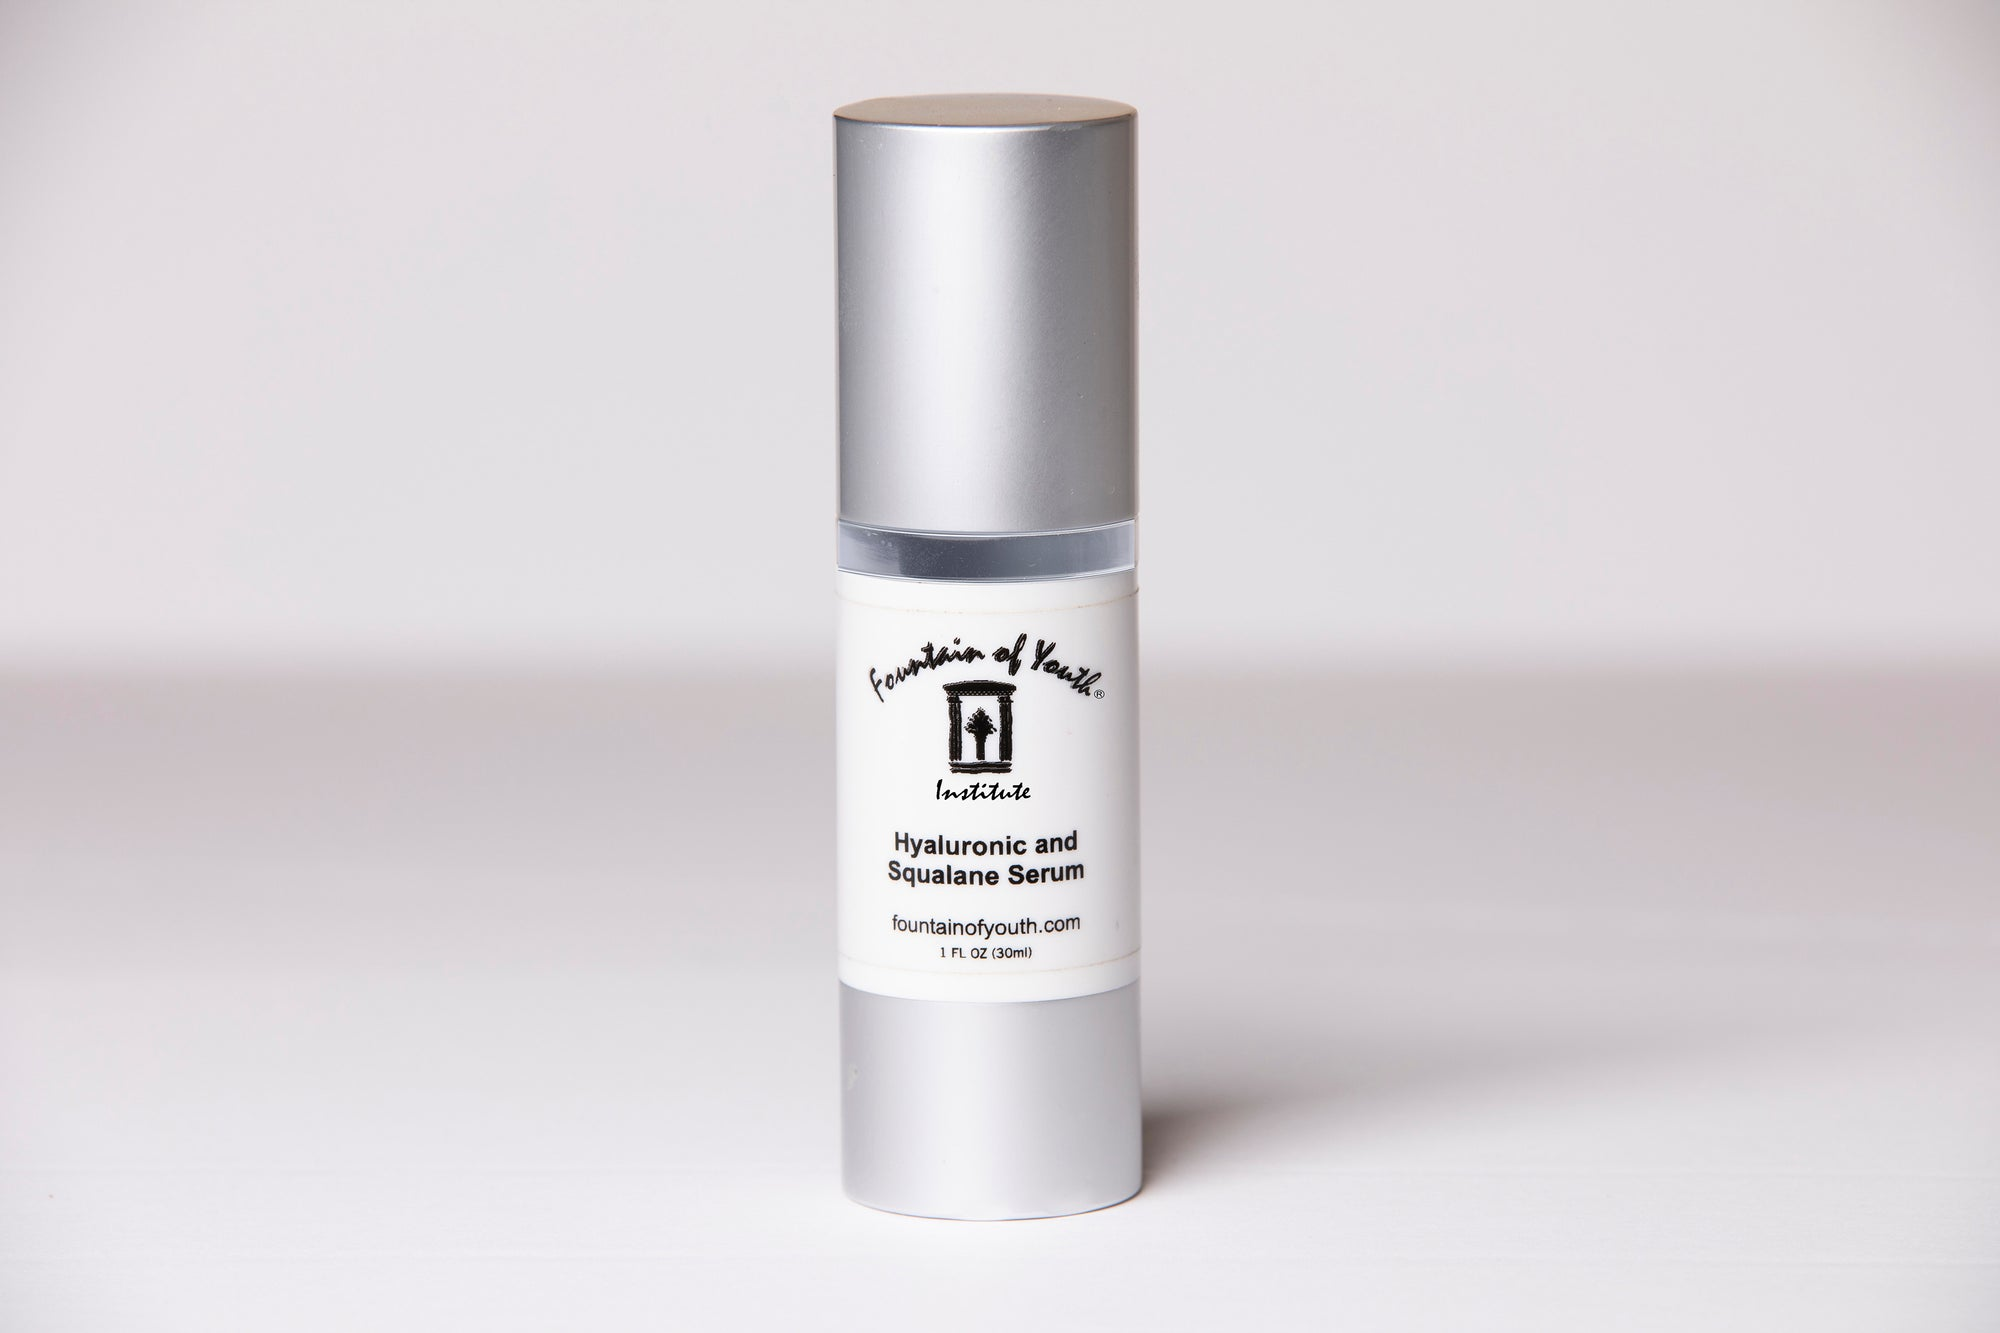 Hyaluronic and Squalne Serum